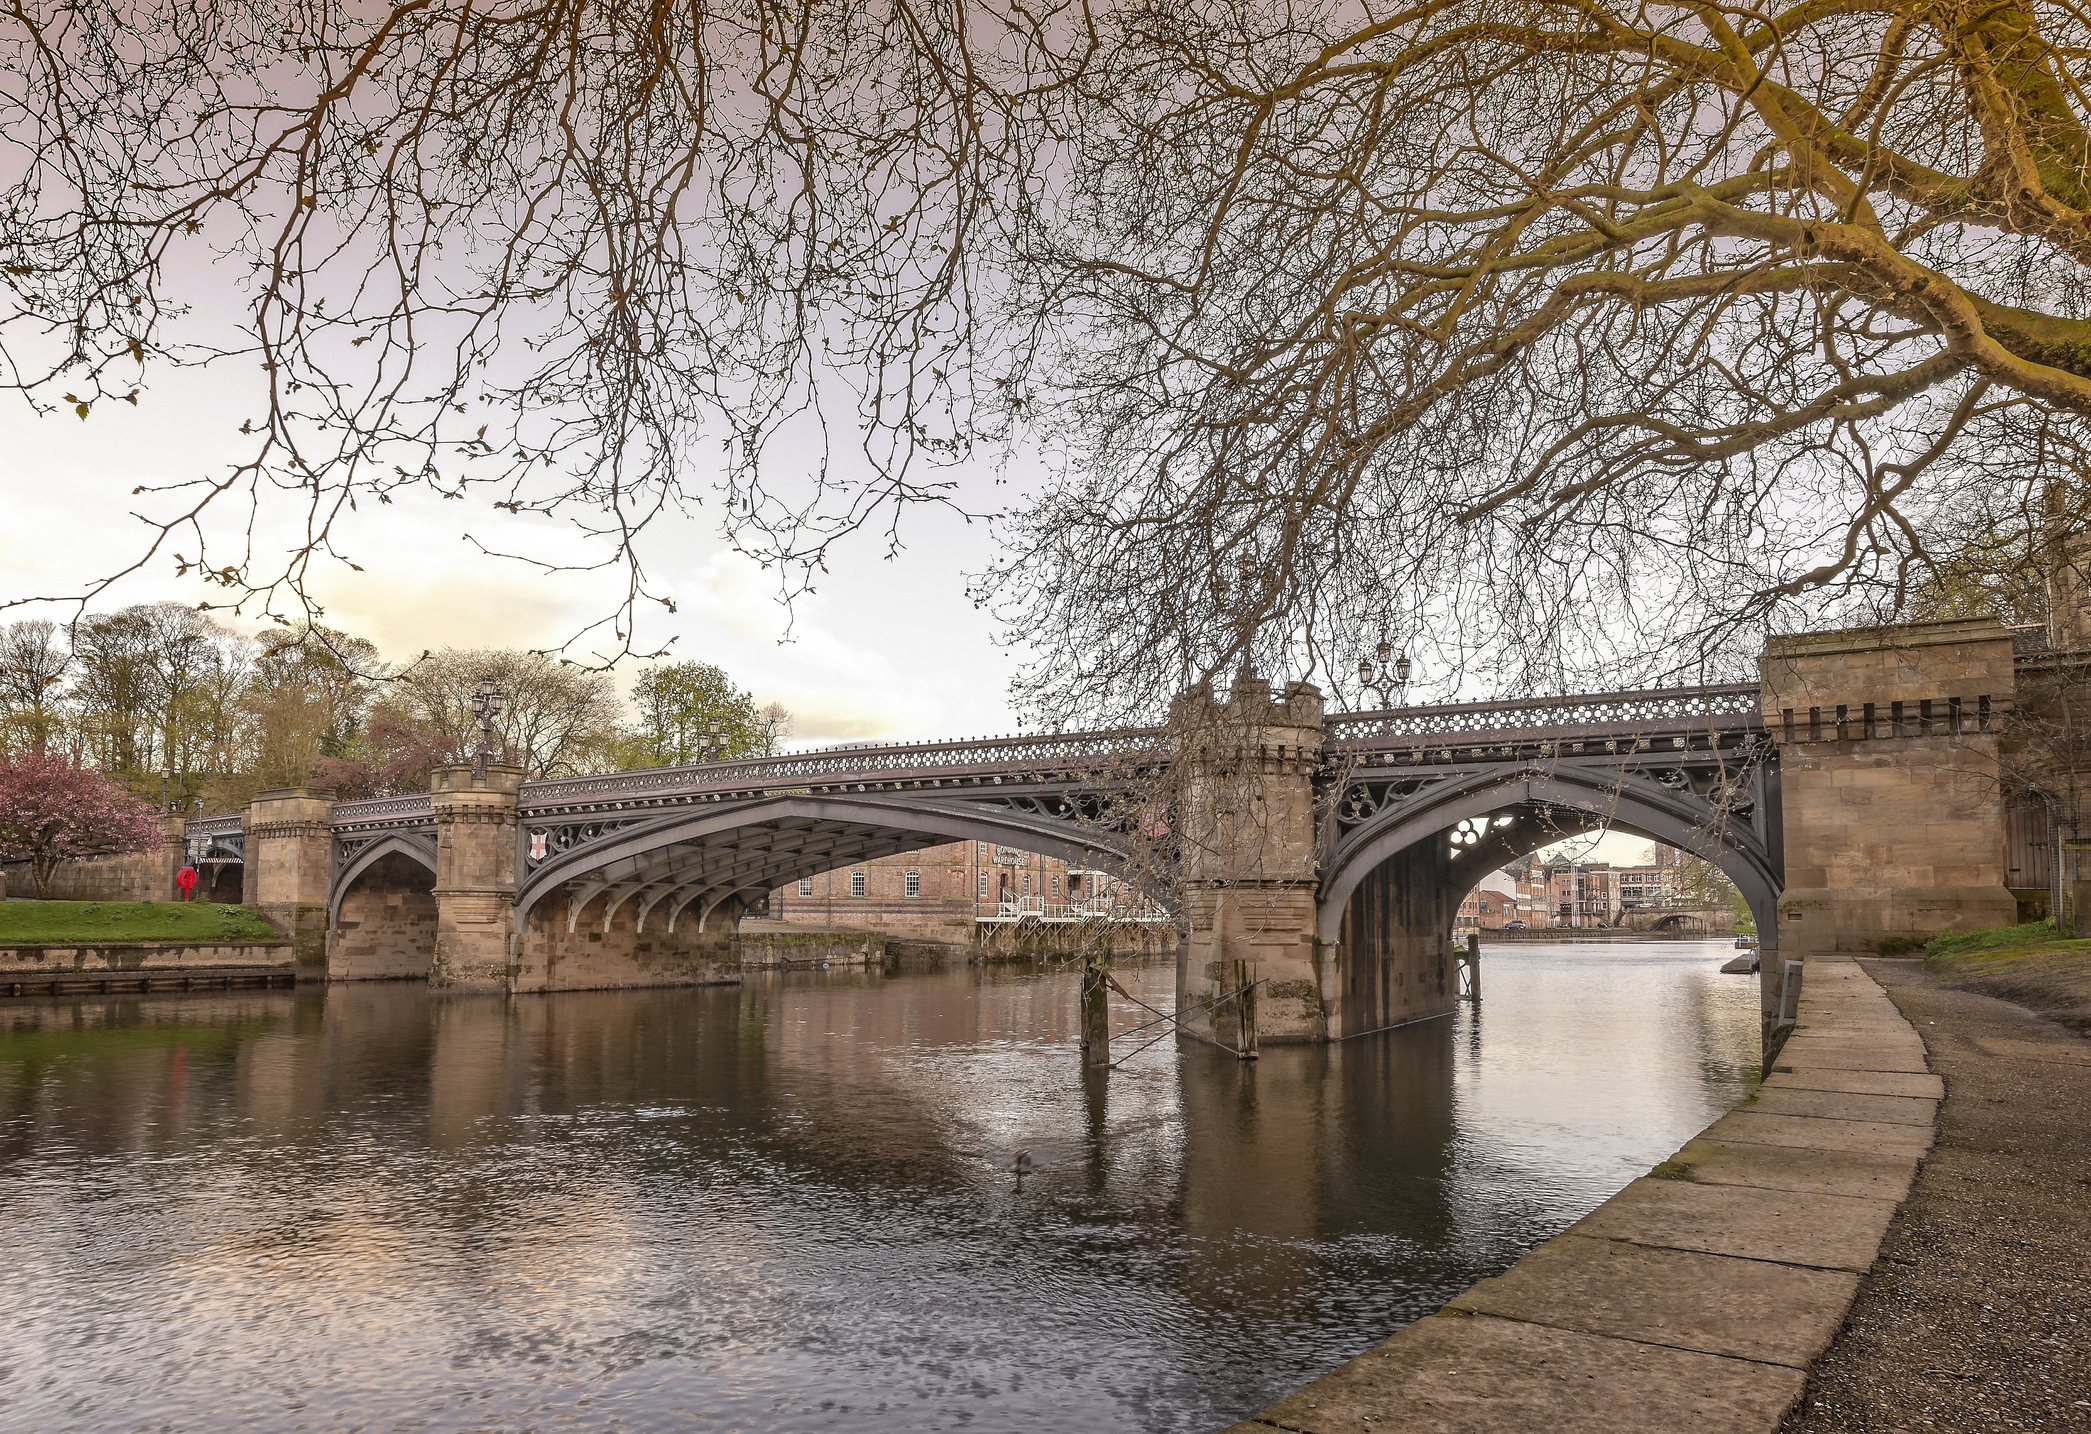 Skeldergate Bridge spans the River Ouse